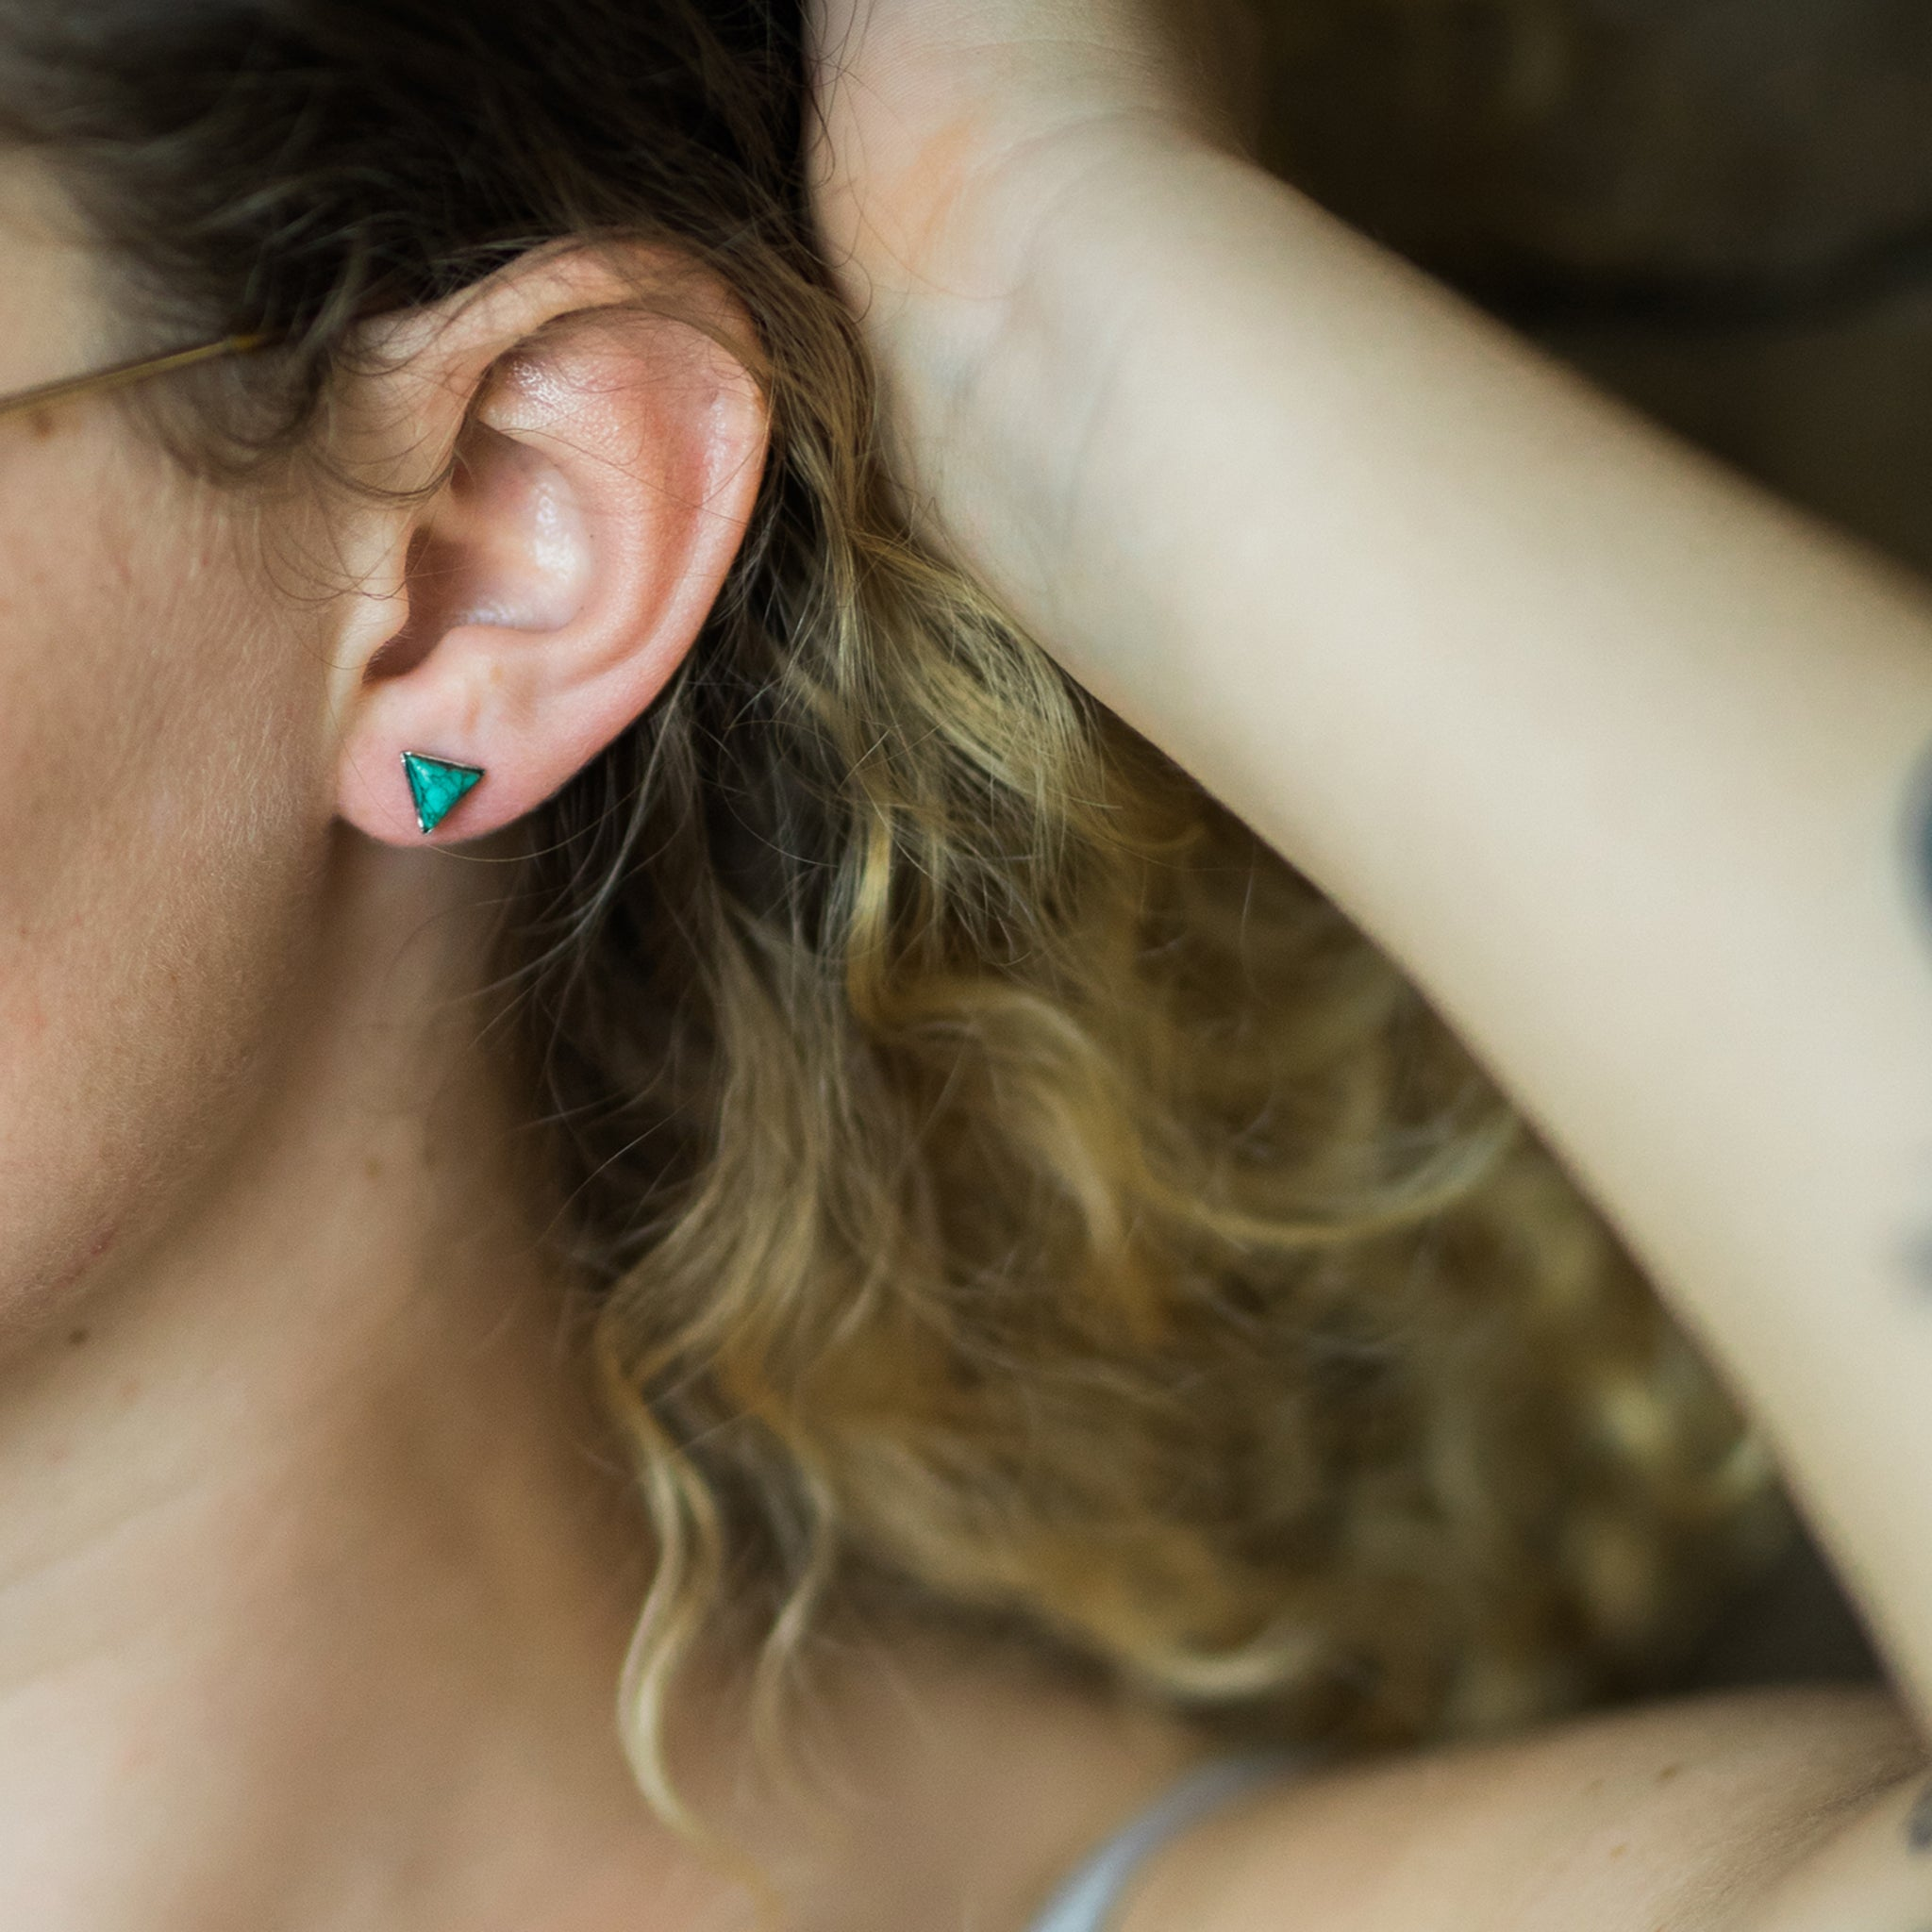 Small tiny petite triangle stud earrings with natural turquoise - December birthstone, minimalist boho jewelry by Yugen Tribe - handmade in USA by women - modeled by blonde white woman with curly hair